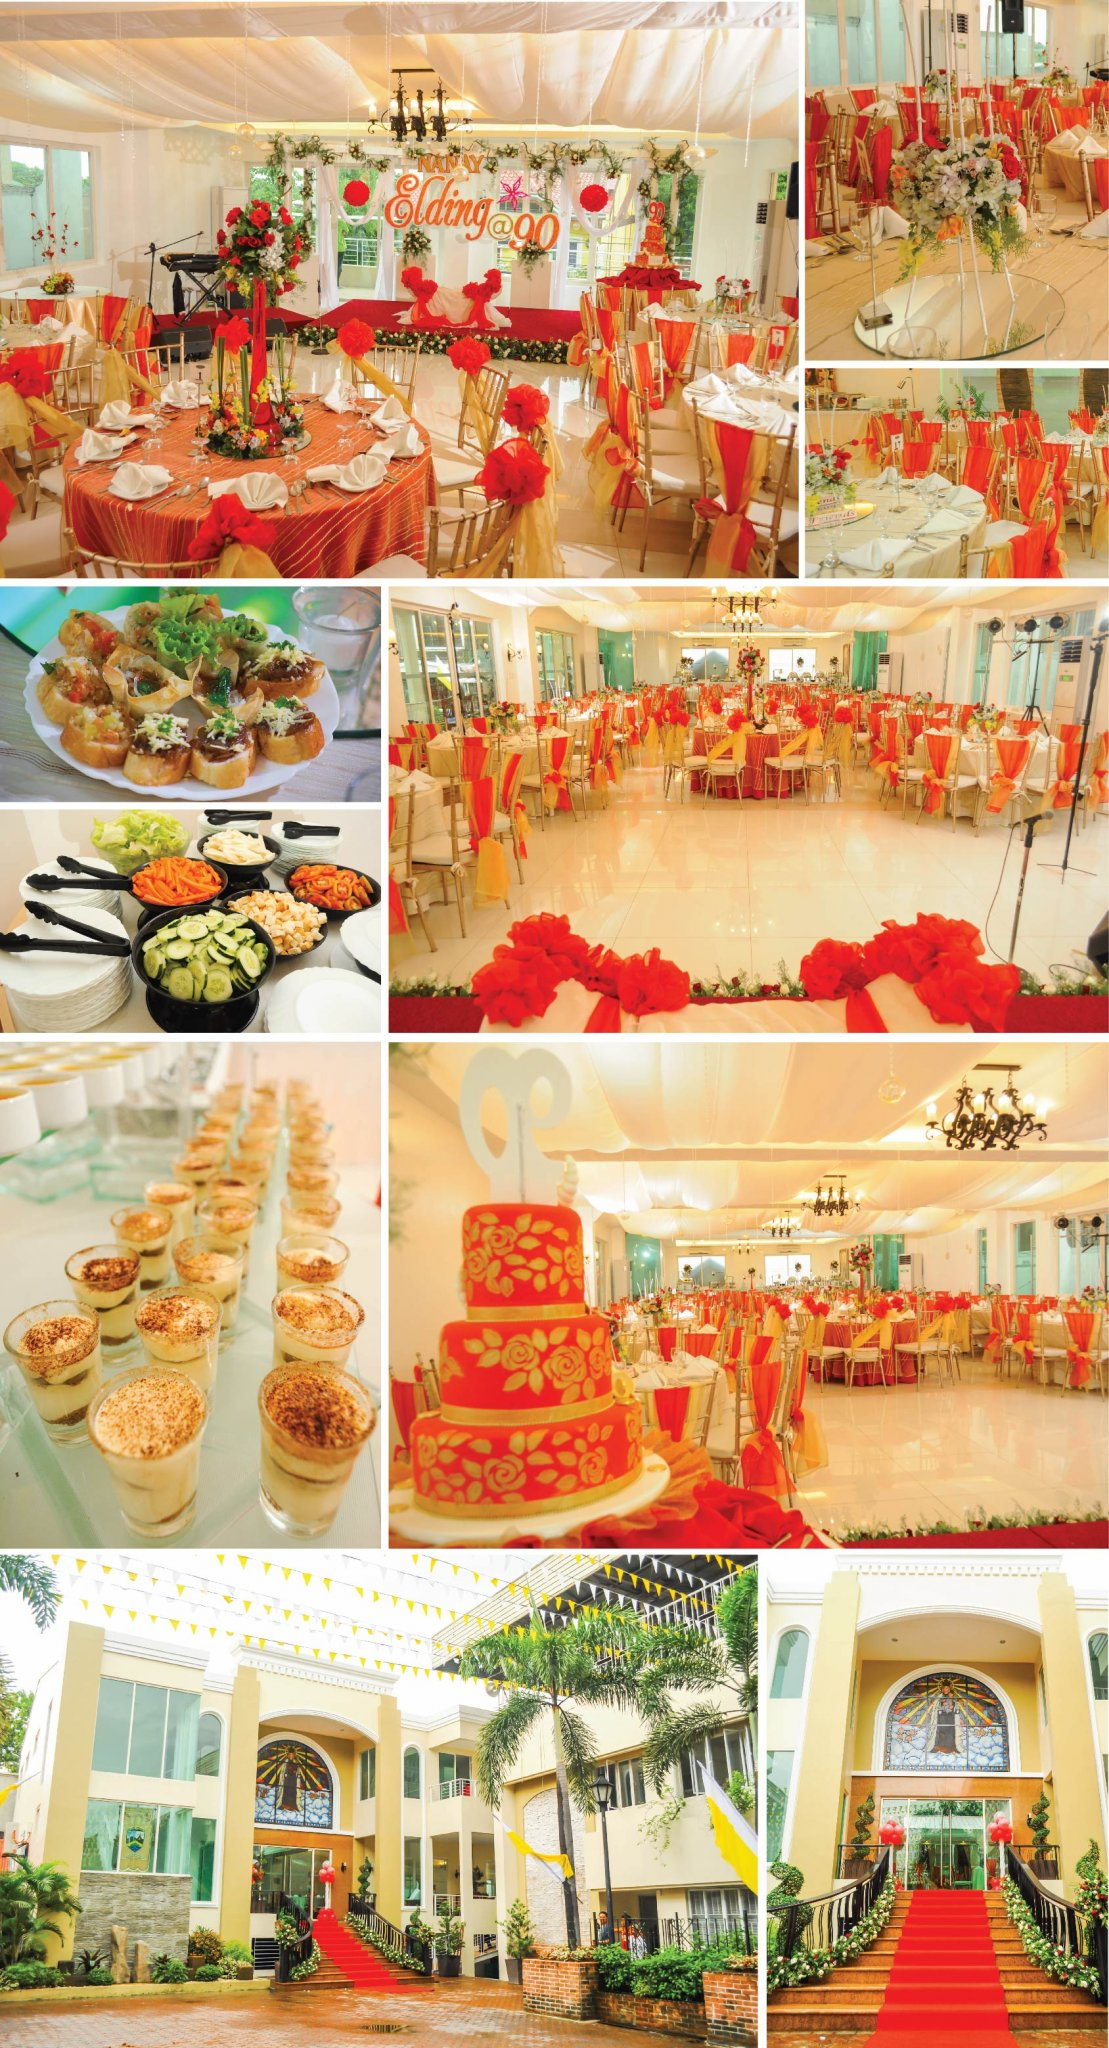 Our Lady of Mount Carmel Function Halls